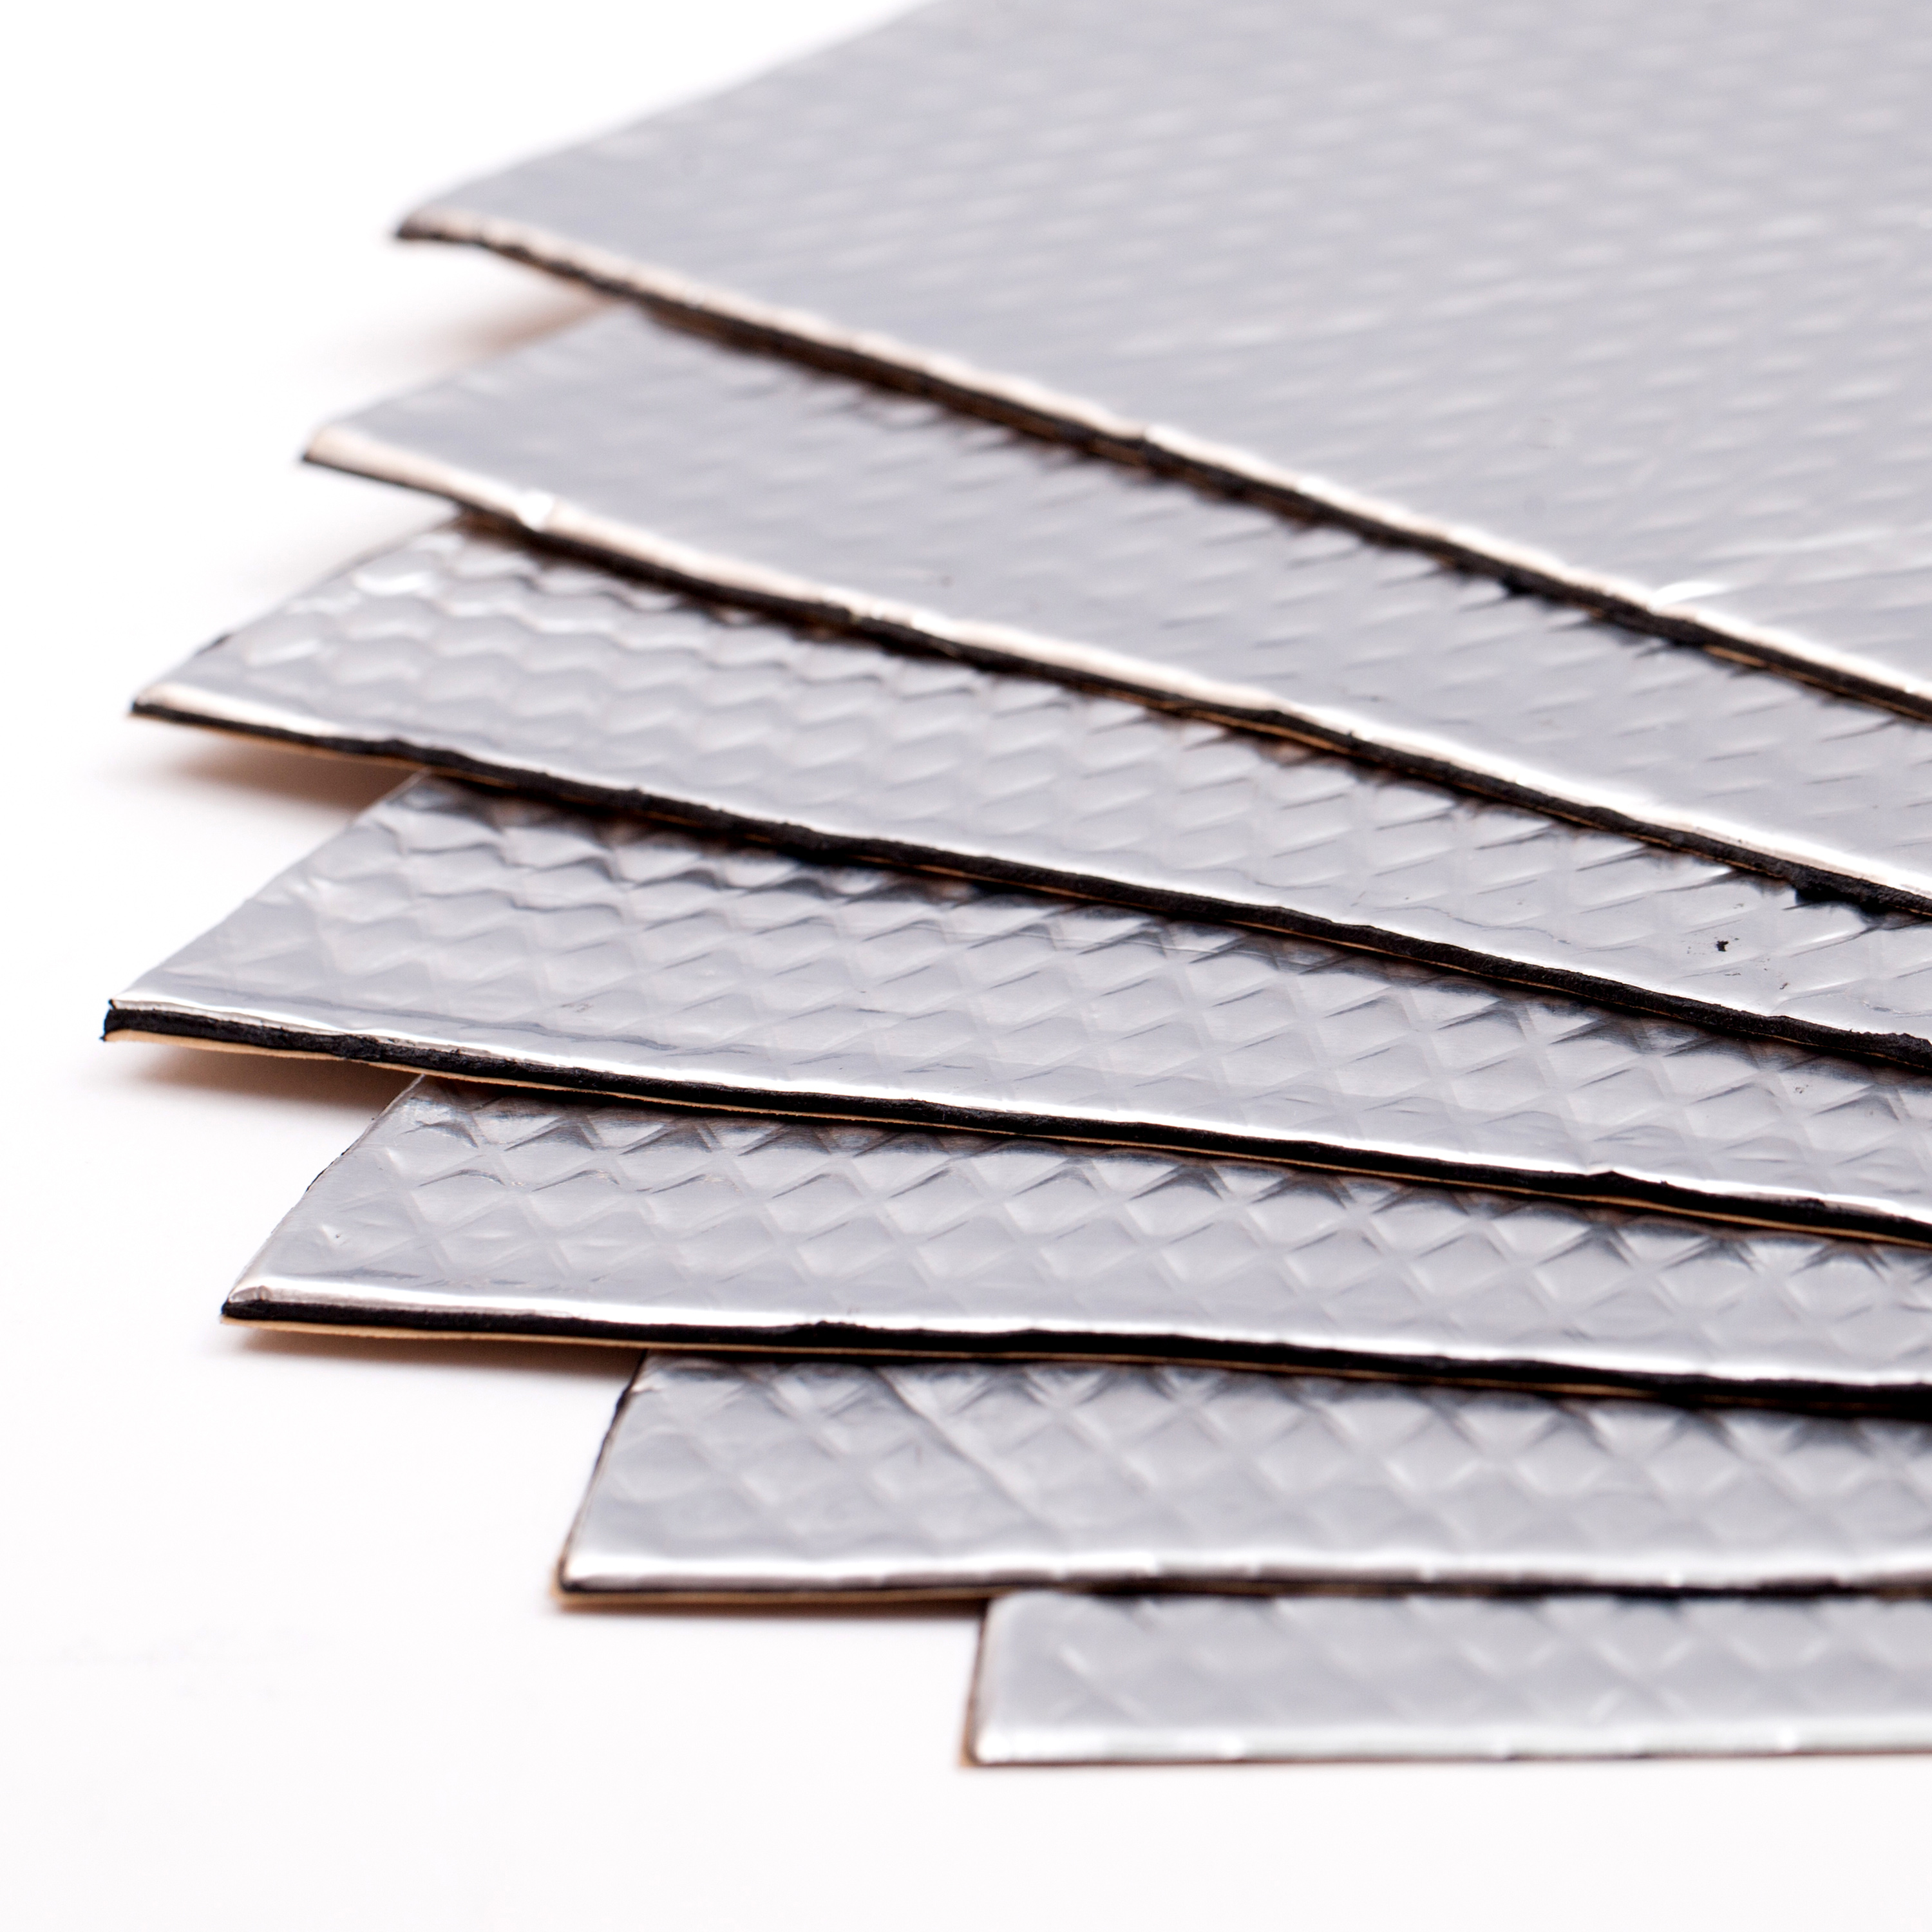 Noico 80 mil 36 sqft car Sound deadening mat, butyl automotive Sound Deadener, audio Noise Insulation and dampening (pack of 9 sheets, total 36 square feet, 0.08 inch thickness)